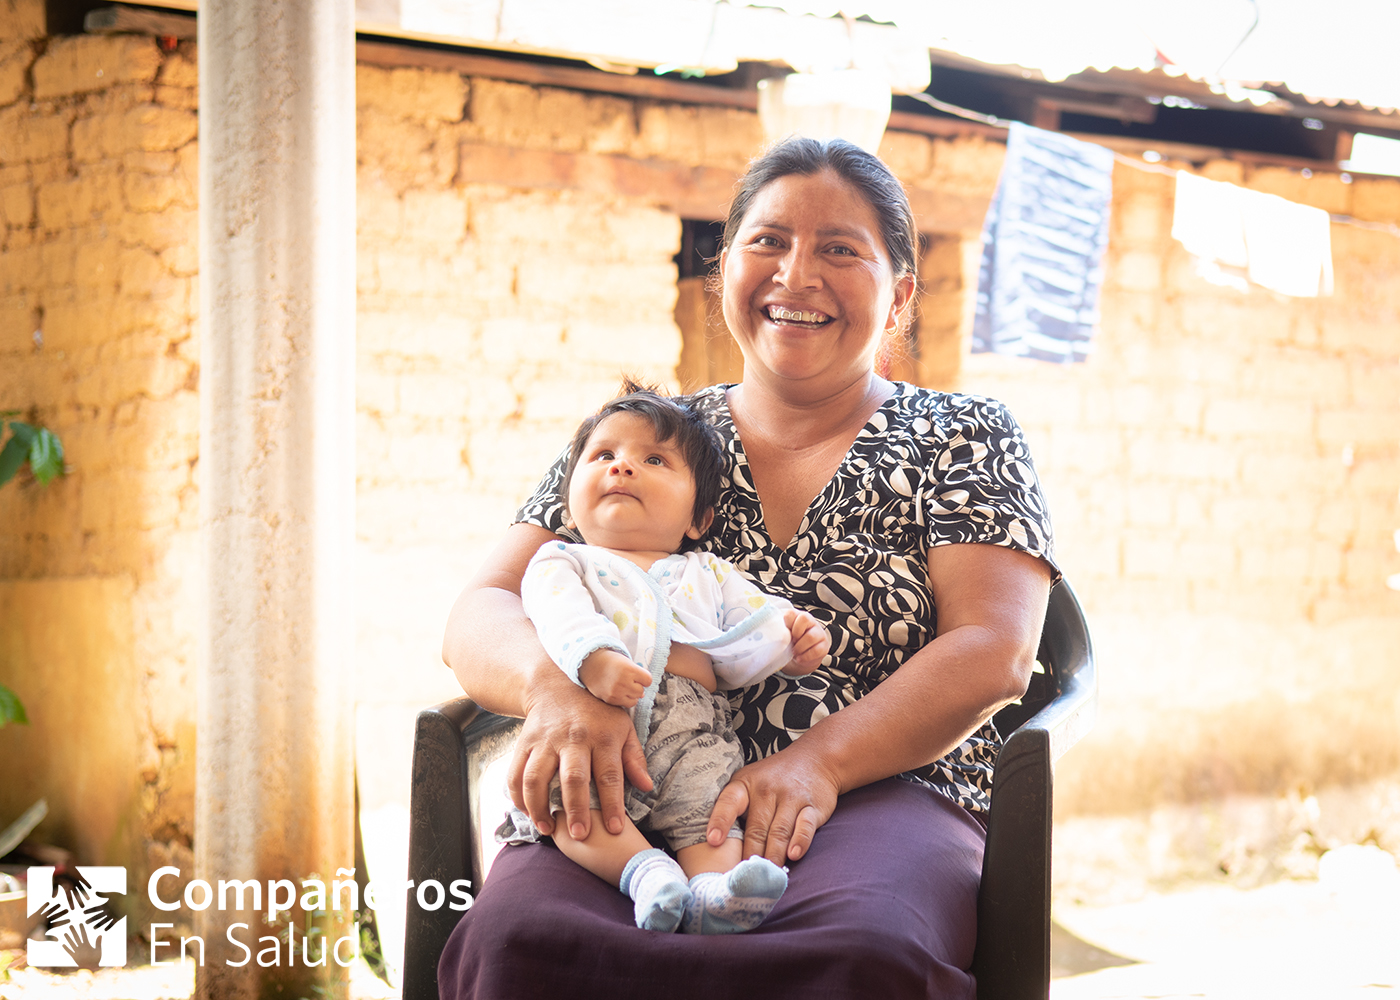 Thanks to her medical team's timely diagnosis of preeclampsia (a condition that can be life-threatening), Olga was able to undergo an emergency c-section in time to ensure her wellbeing and that of her baby, Omar.